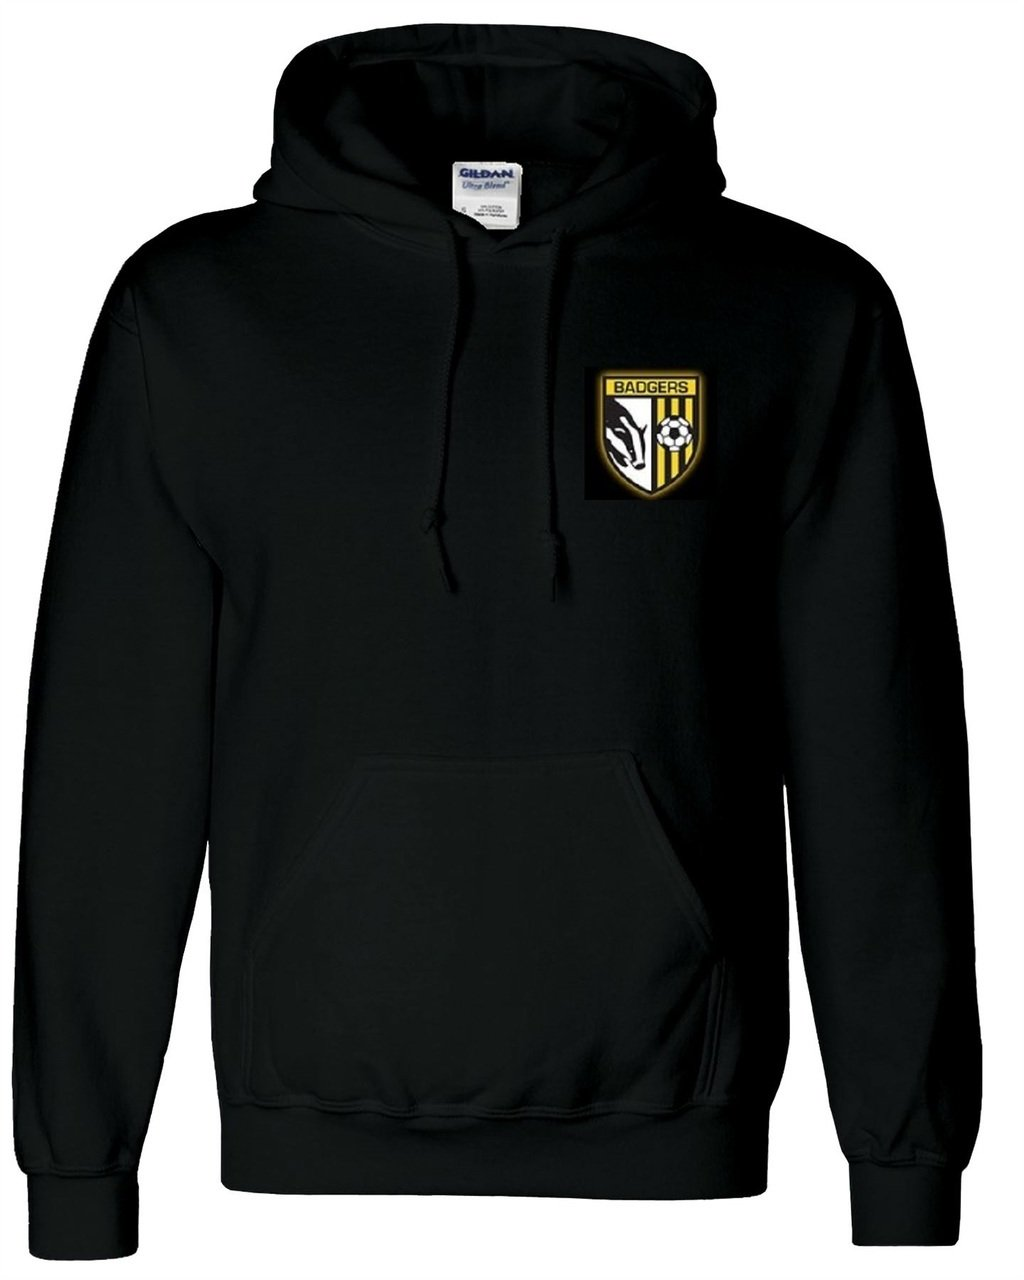 Pateley Bridge JFC Junior Hoody